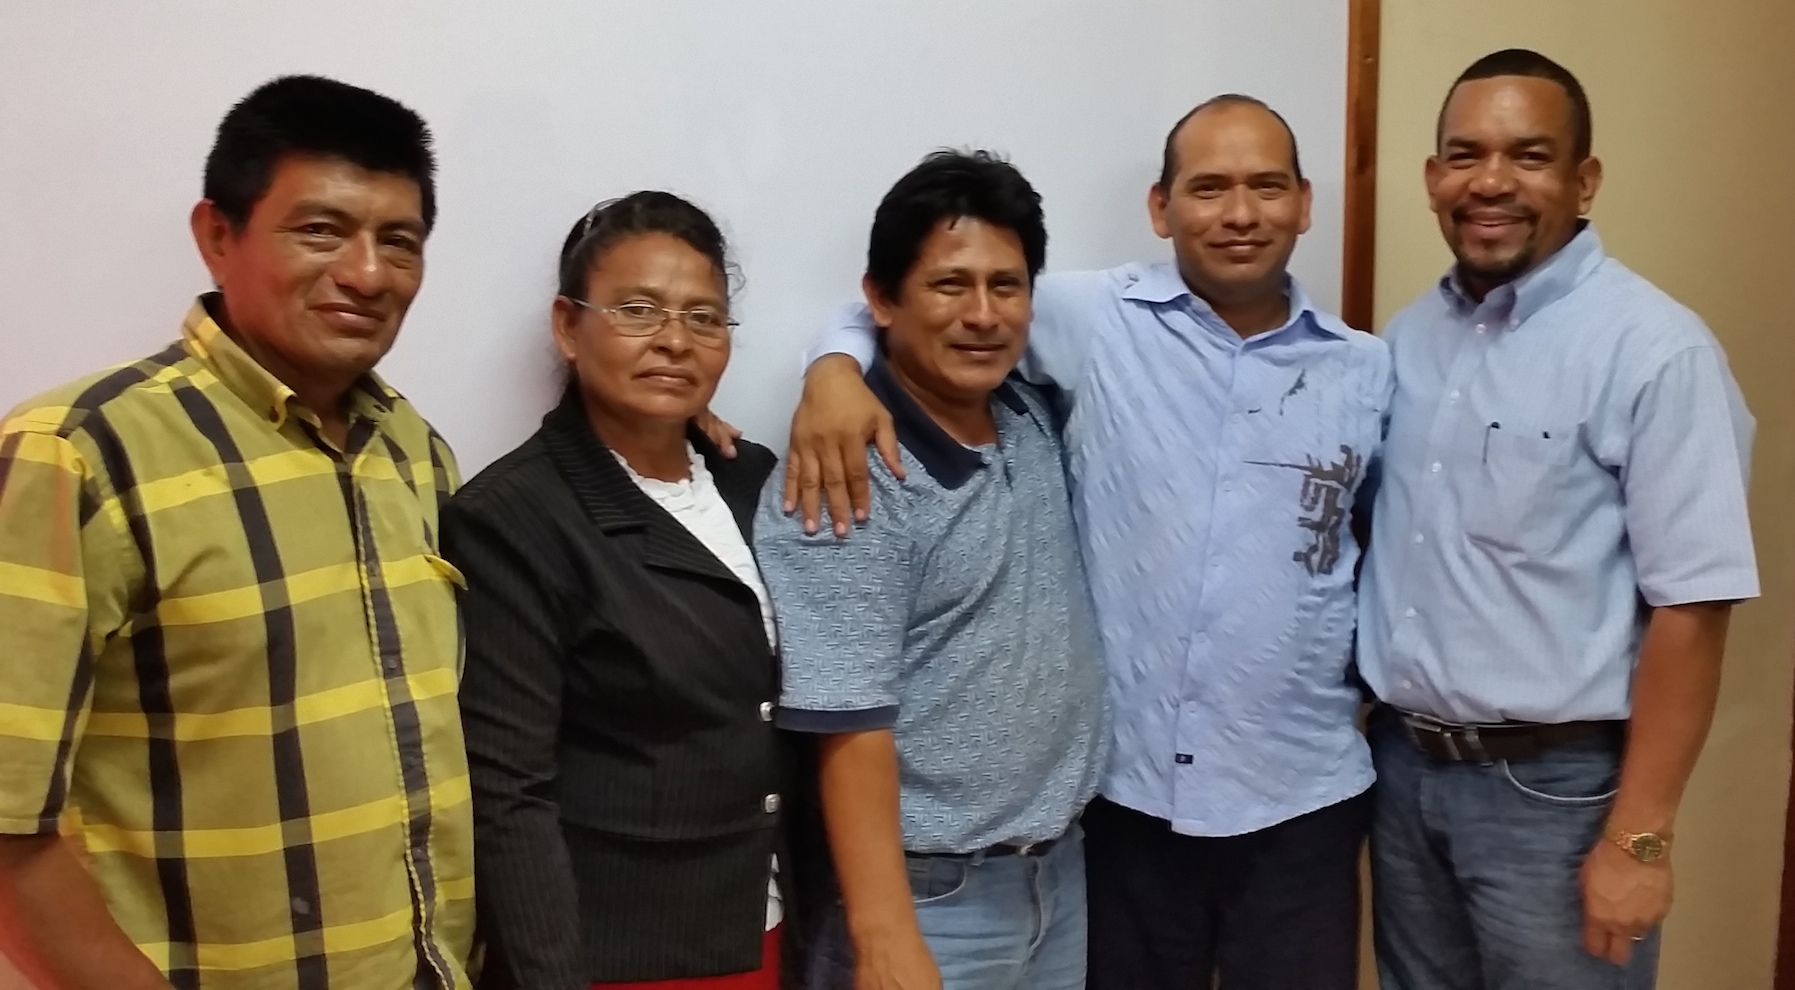 Pastor Caceres, his wife, Juana, Pastor Sanchez (Twelve Churches), Pastor Lopez and ONet Nicaragua Director, Eddy Morales after signing all of the legal paperwork to launch these churches to Local Church Initiative partners.